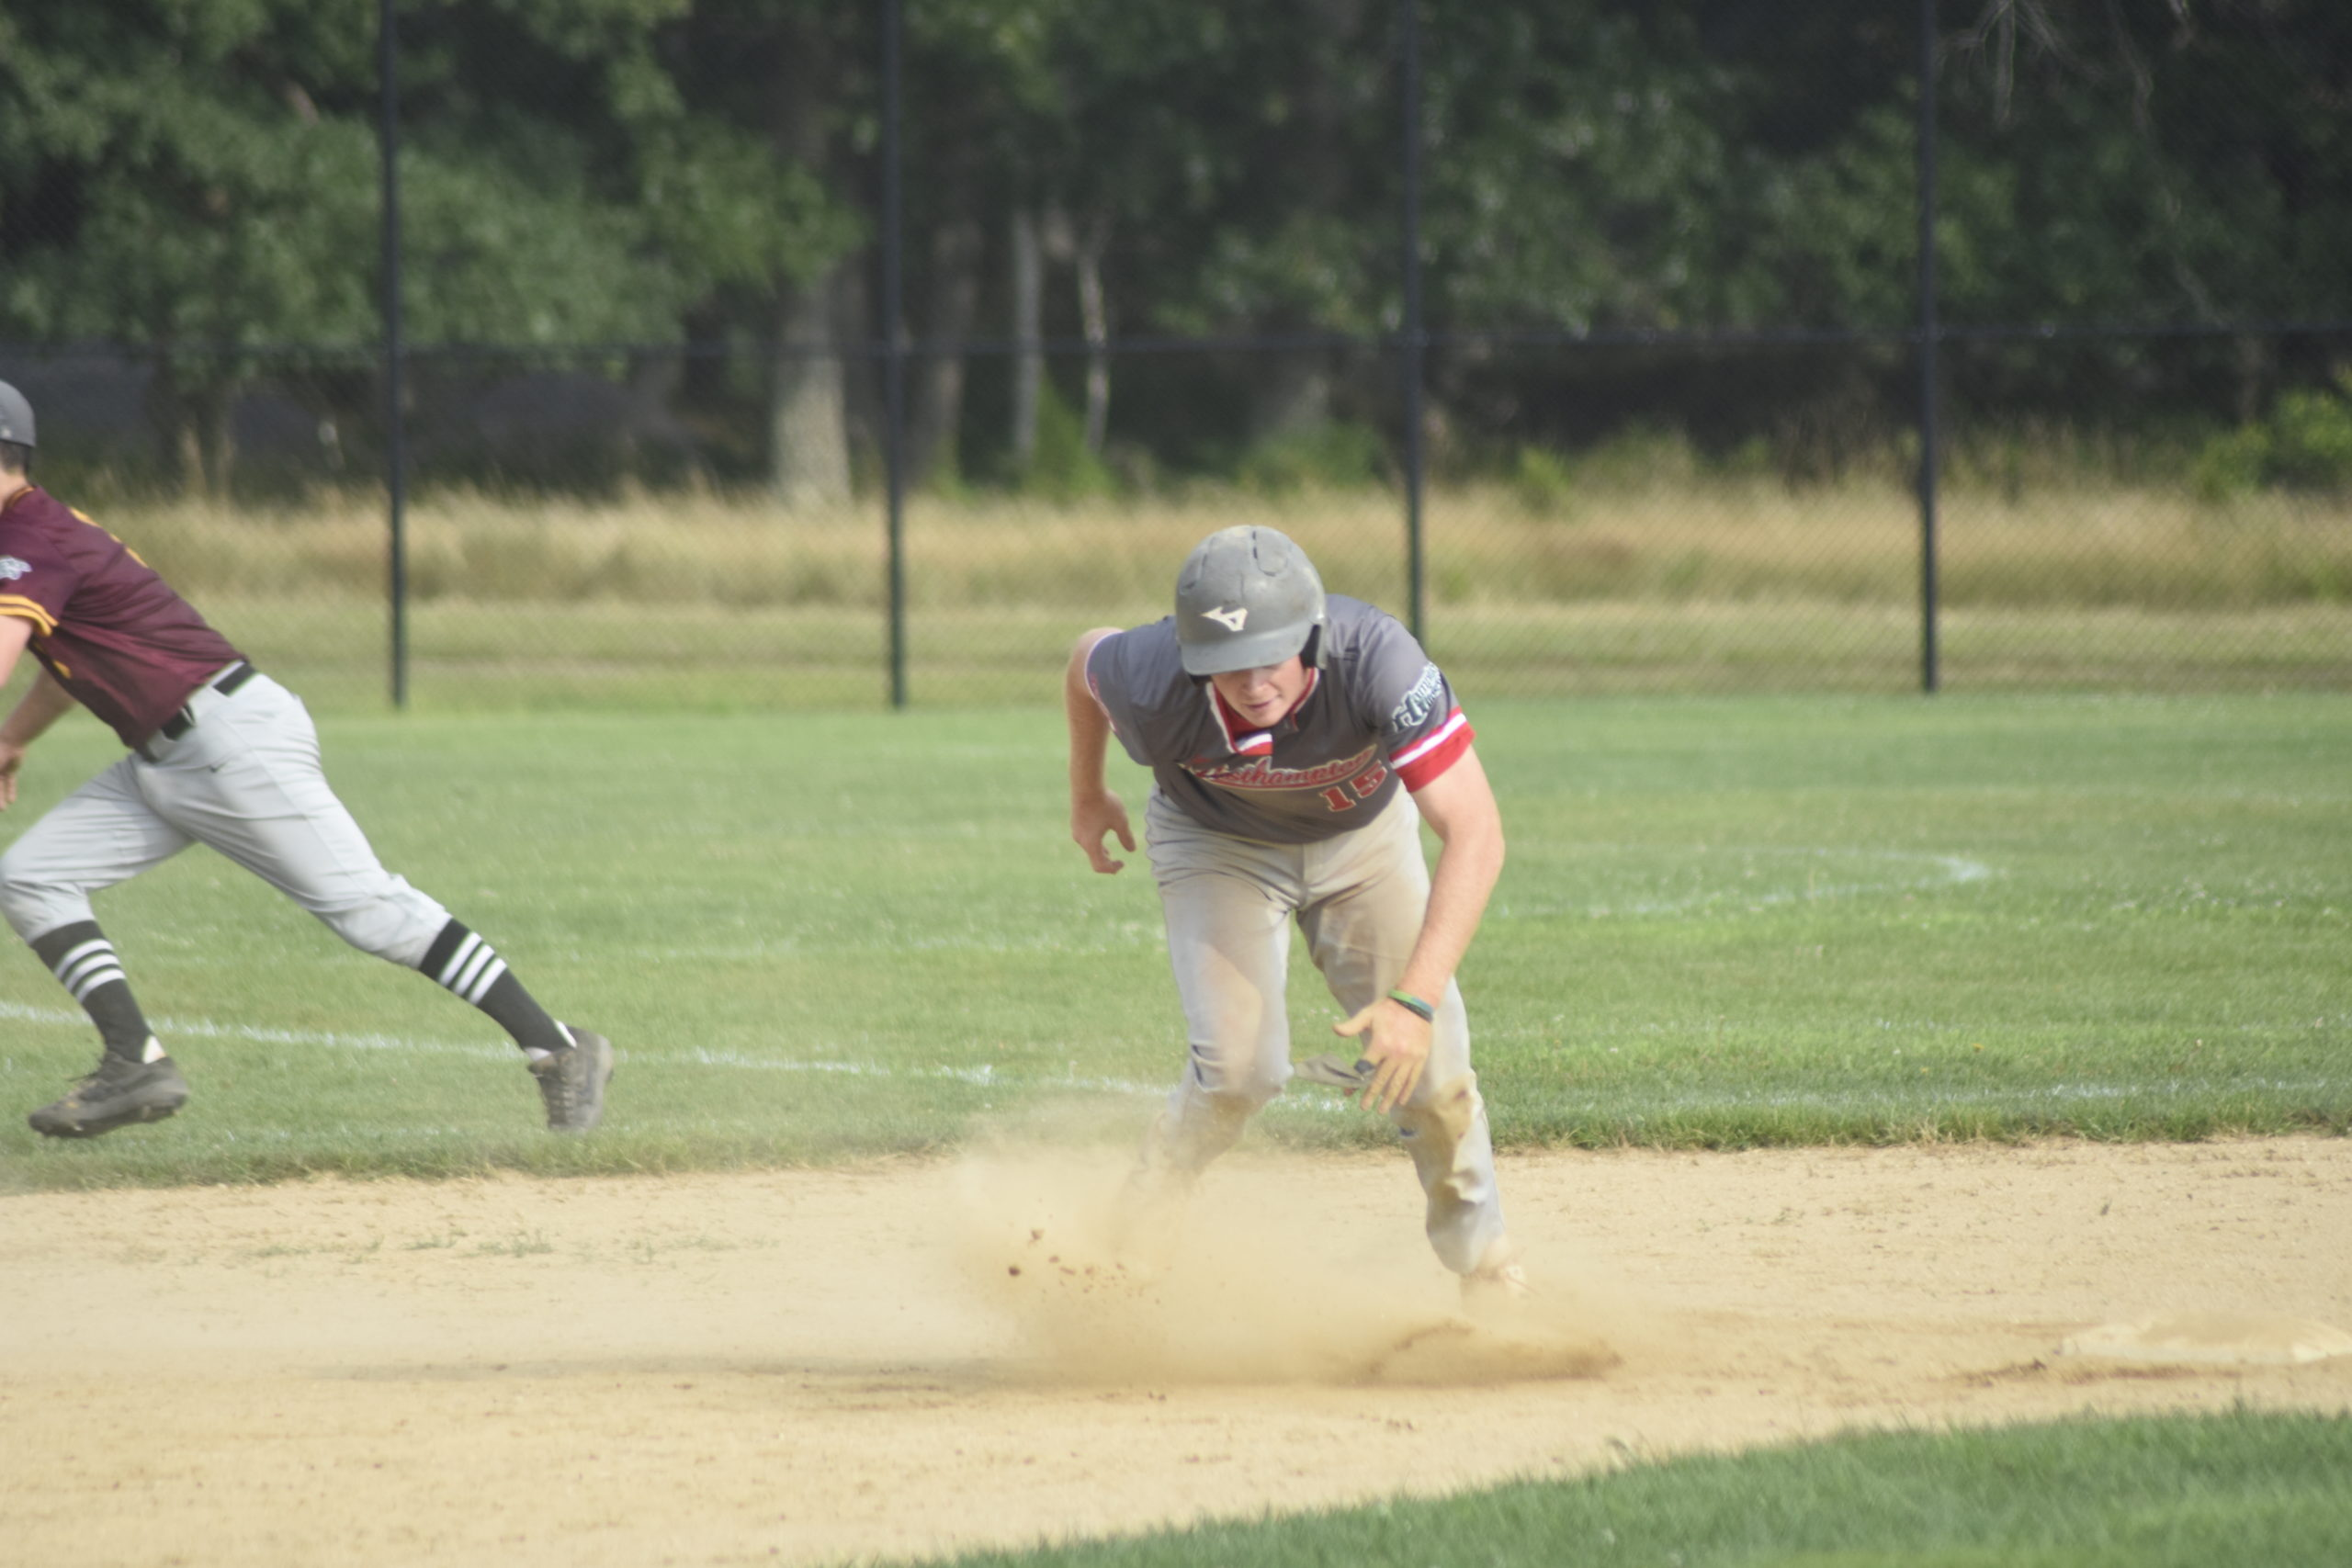 Matt Alifano (Adelphi/Center Moriches) races toward third base after an errant throw goes into the outfield as he stole second base.